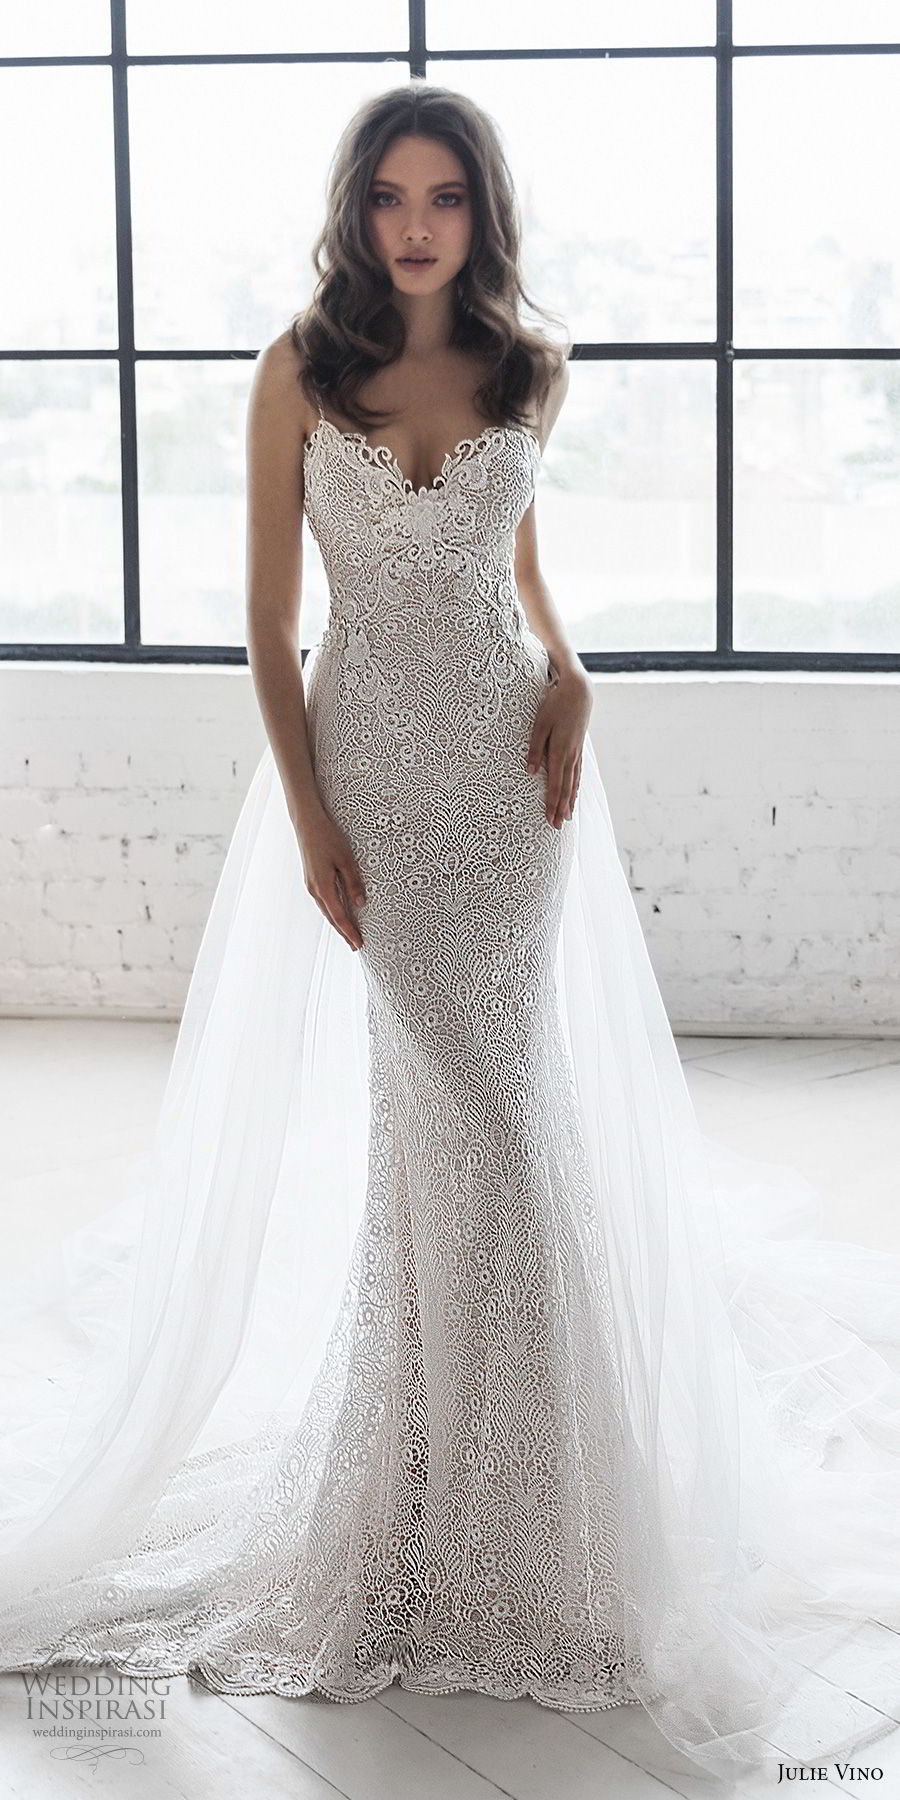 julie vino 2019 romanzo bridal sleeveless spaghetti strap sweetheart neckline full embellishment elegant fit and flare wedding dress a  line overskirt open back chapel train (9) mv